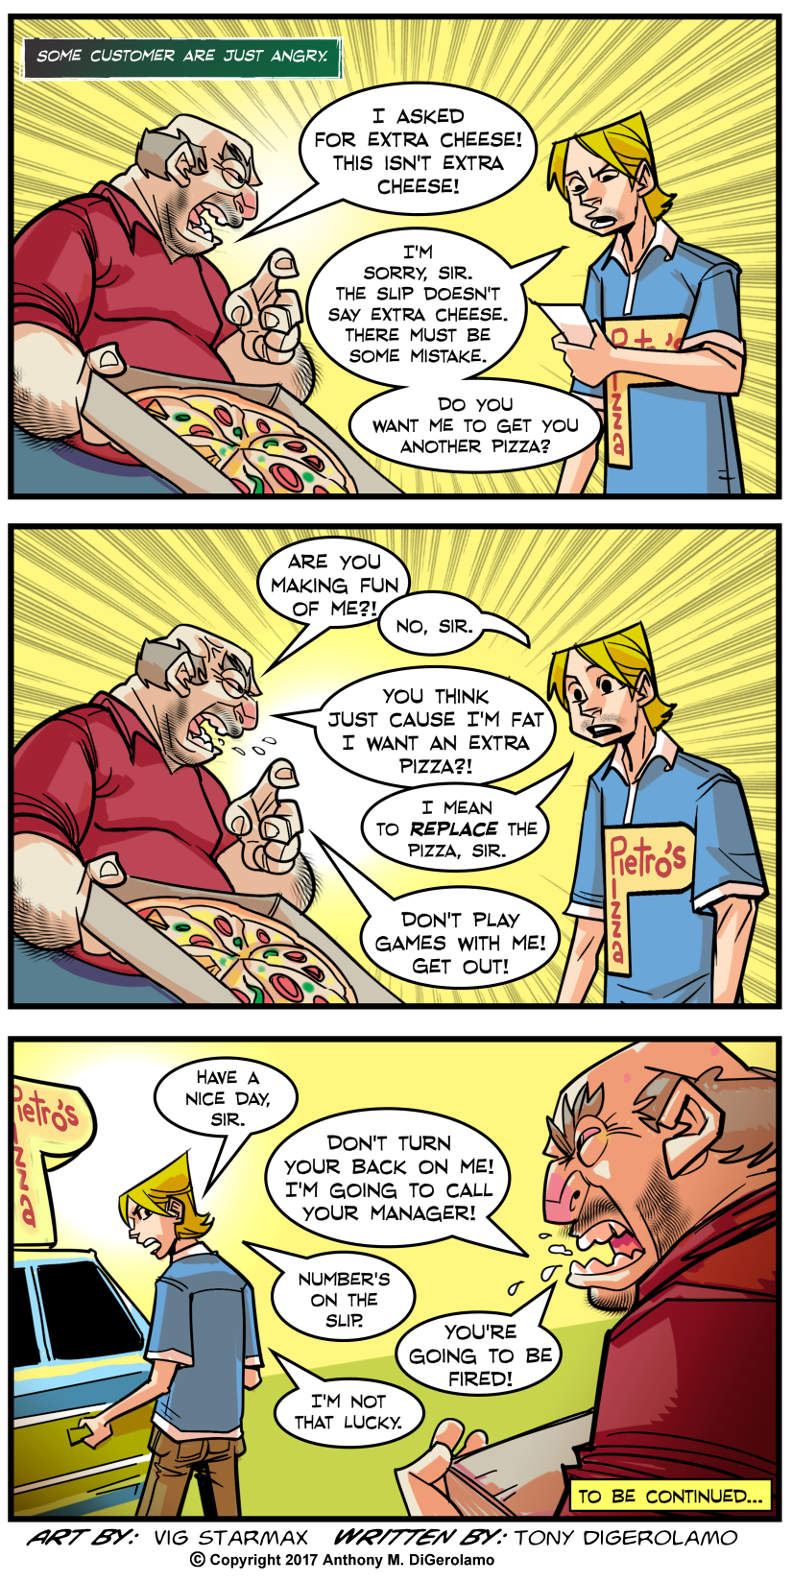 Tales of Pizza:  Angry Extra Cheese